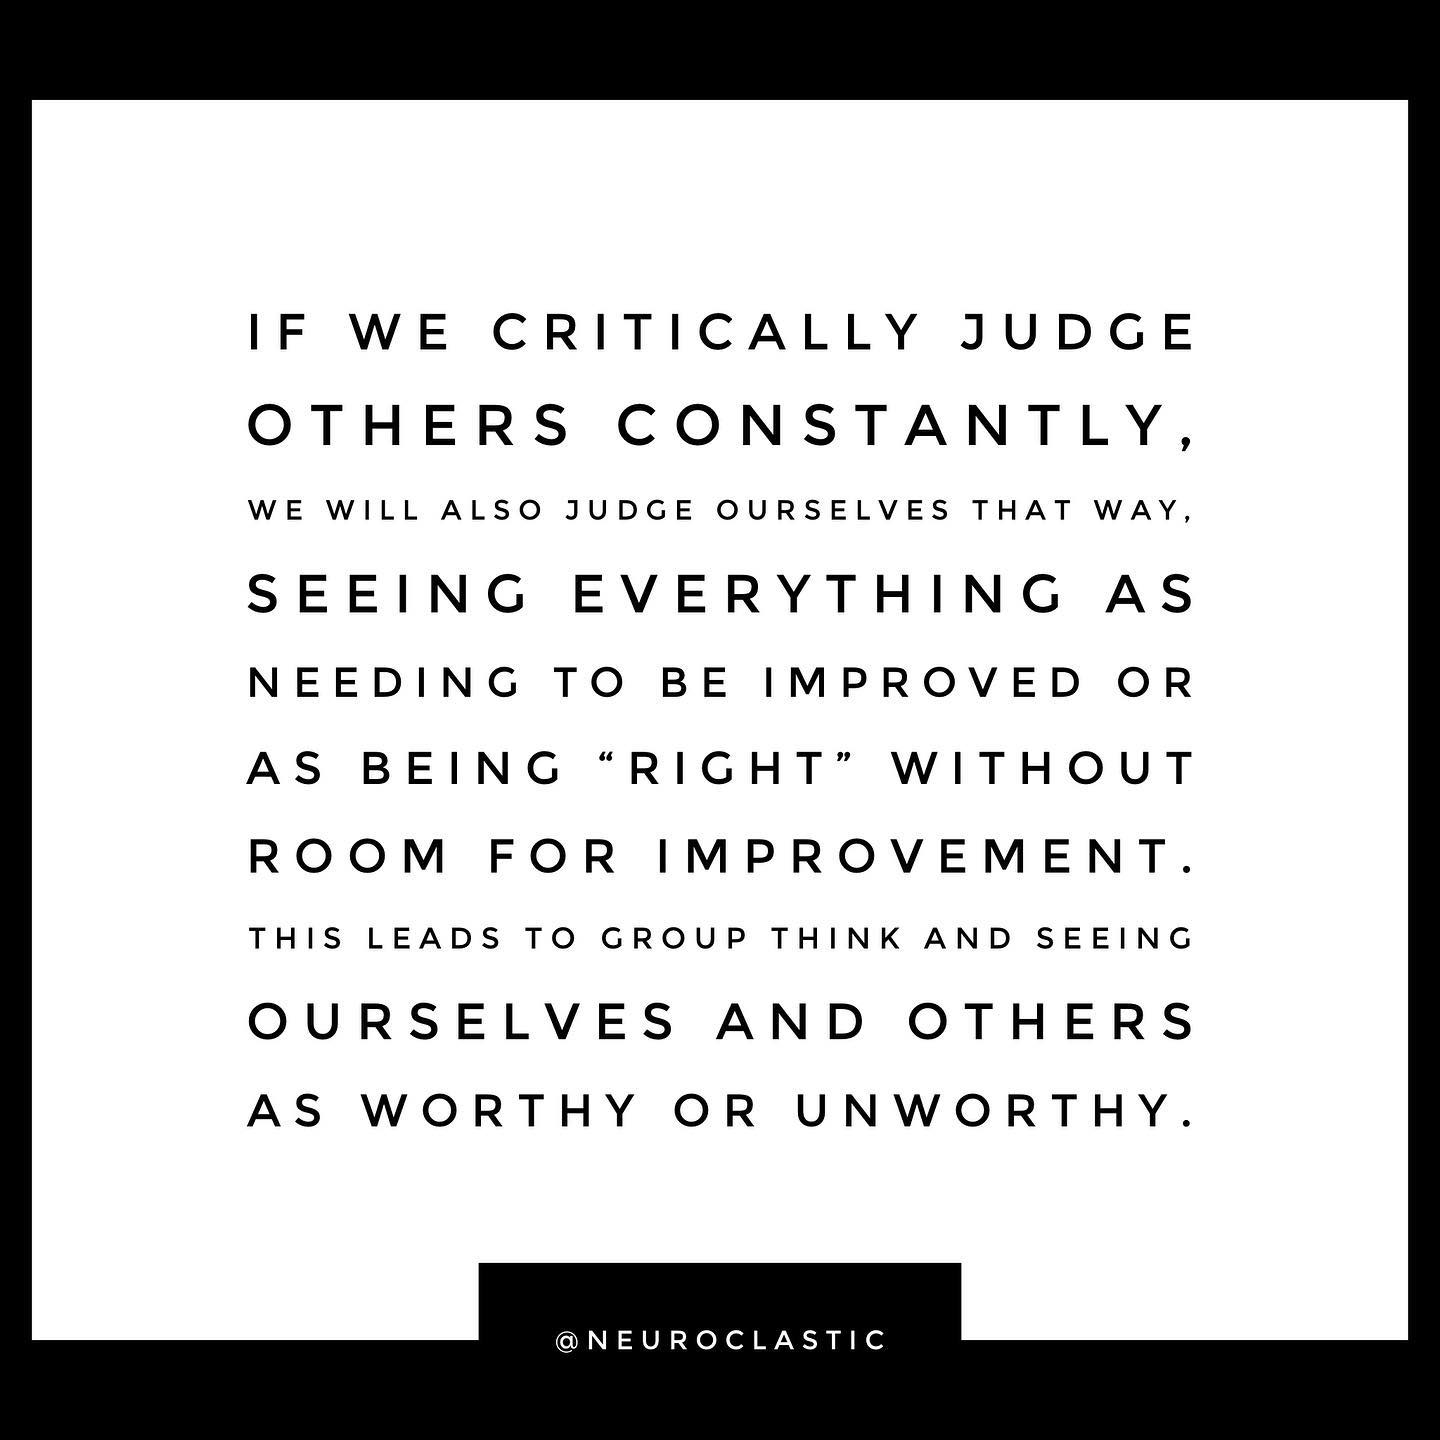 """If we critically judge others constantly, we will also judge ourselves that way, seeing everything as needing to be improved or as being """"right"""" without room for improvement. This leads to group think and seeing ourselves and others as worthy or unworthy. @NeuroClastic"""